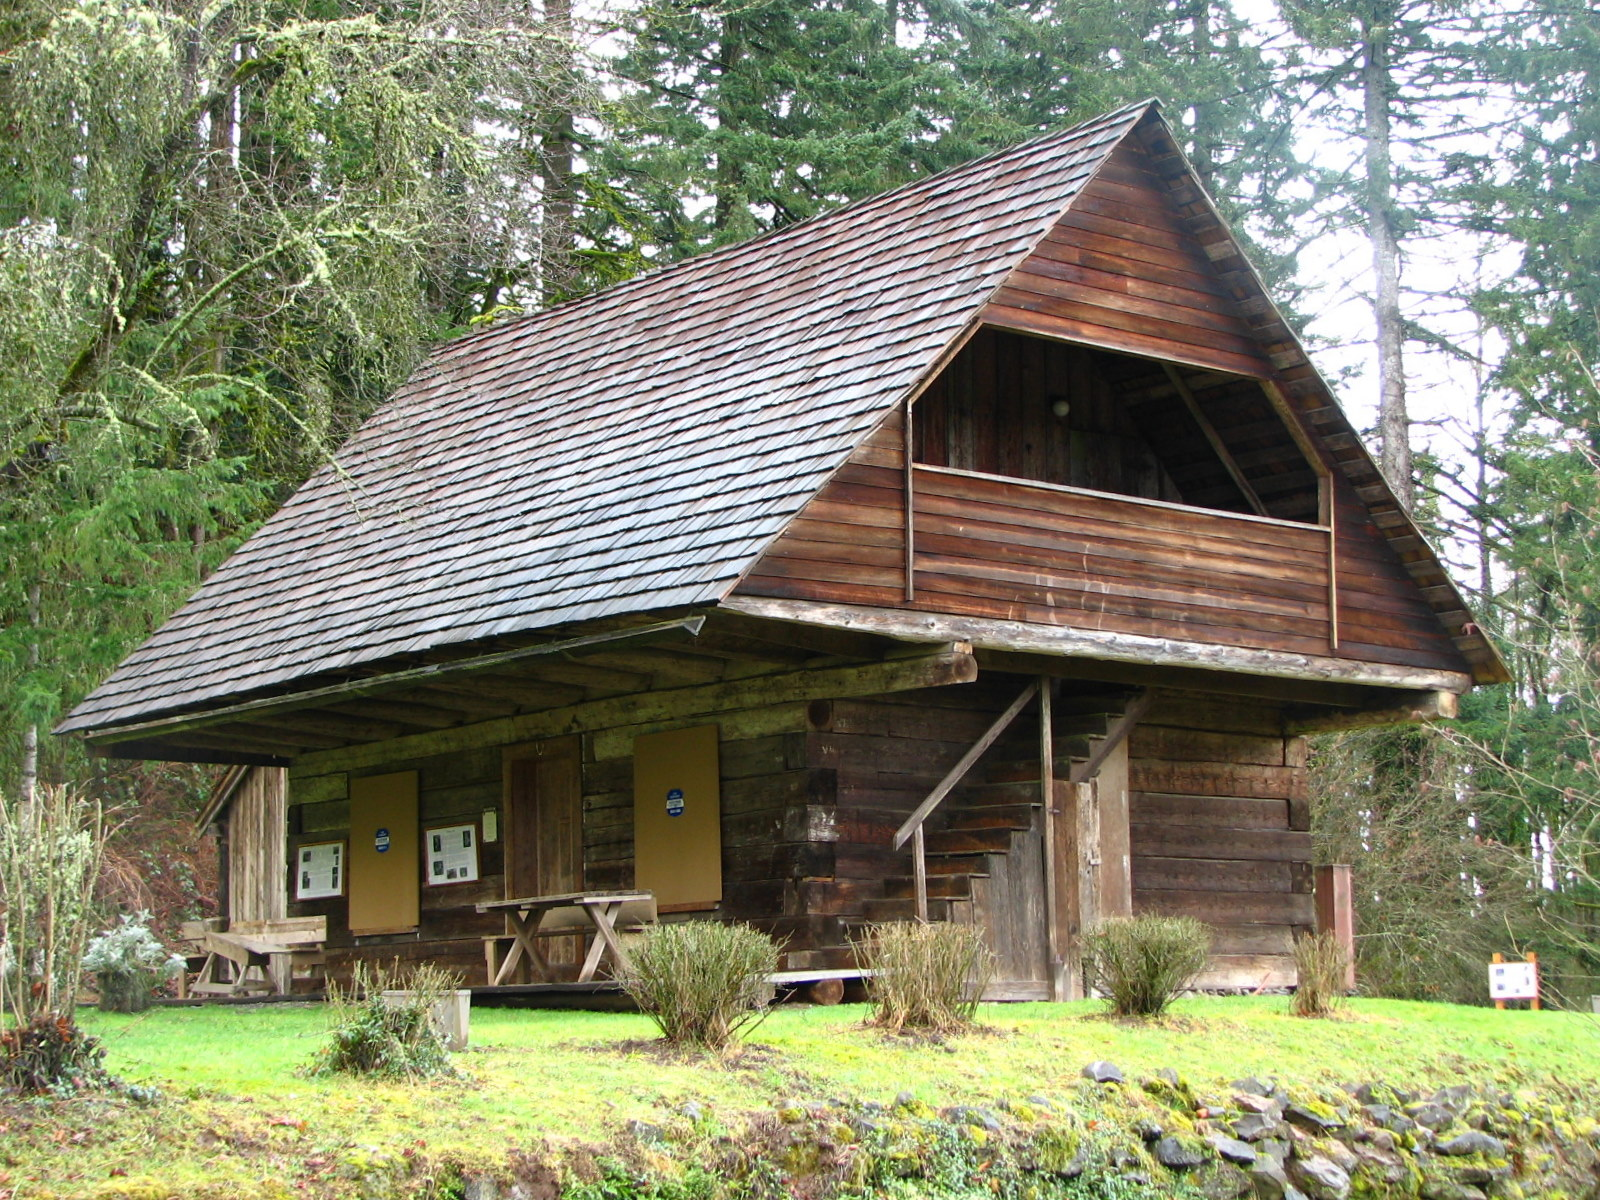 1000 images about cool log cabins cottages on pinterest for Small cabins and cottages